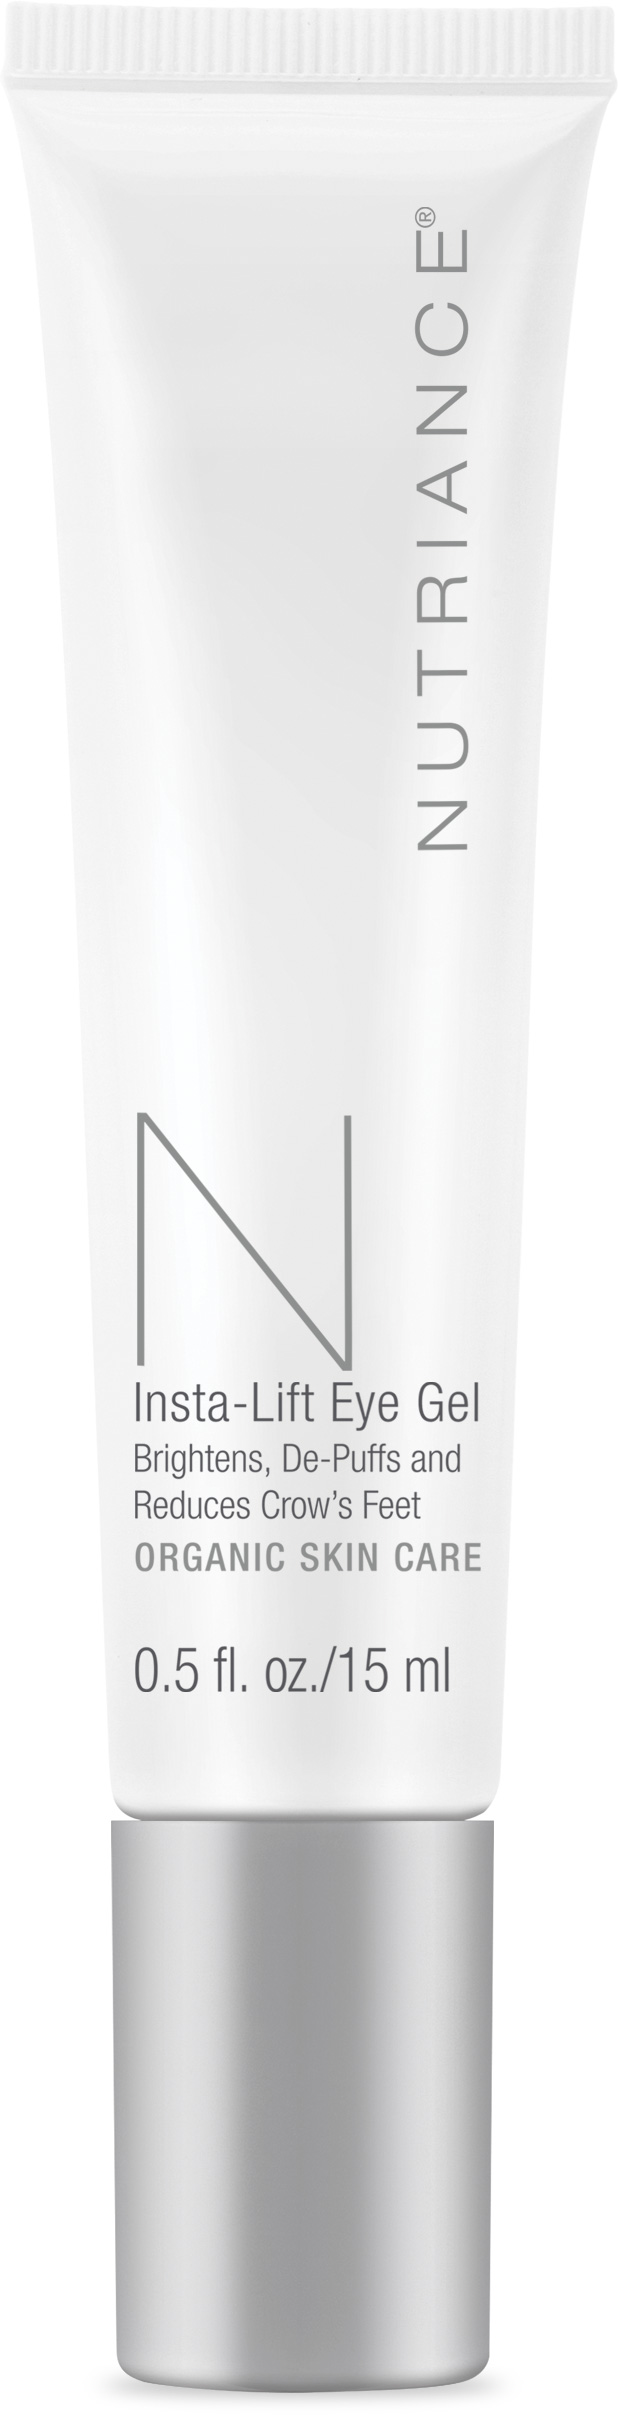 Insta-Lift Eye Gel